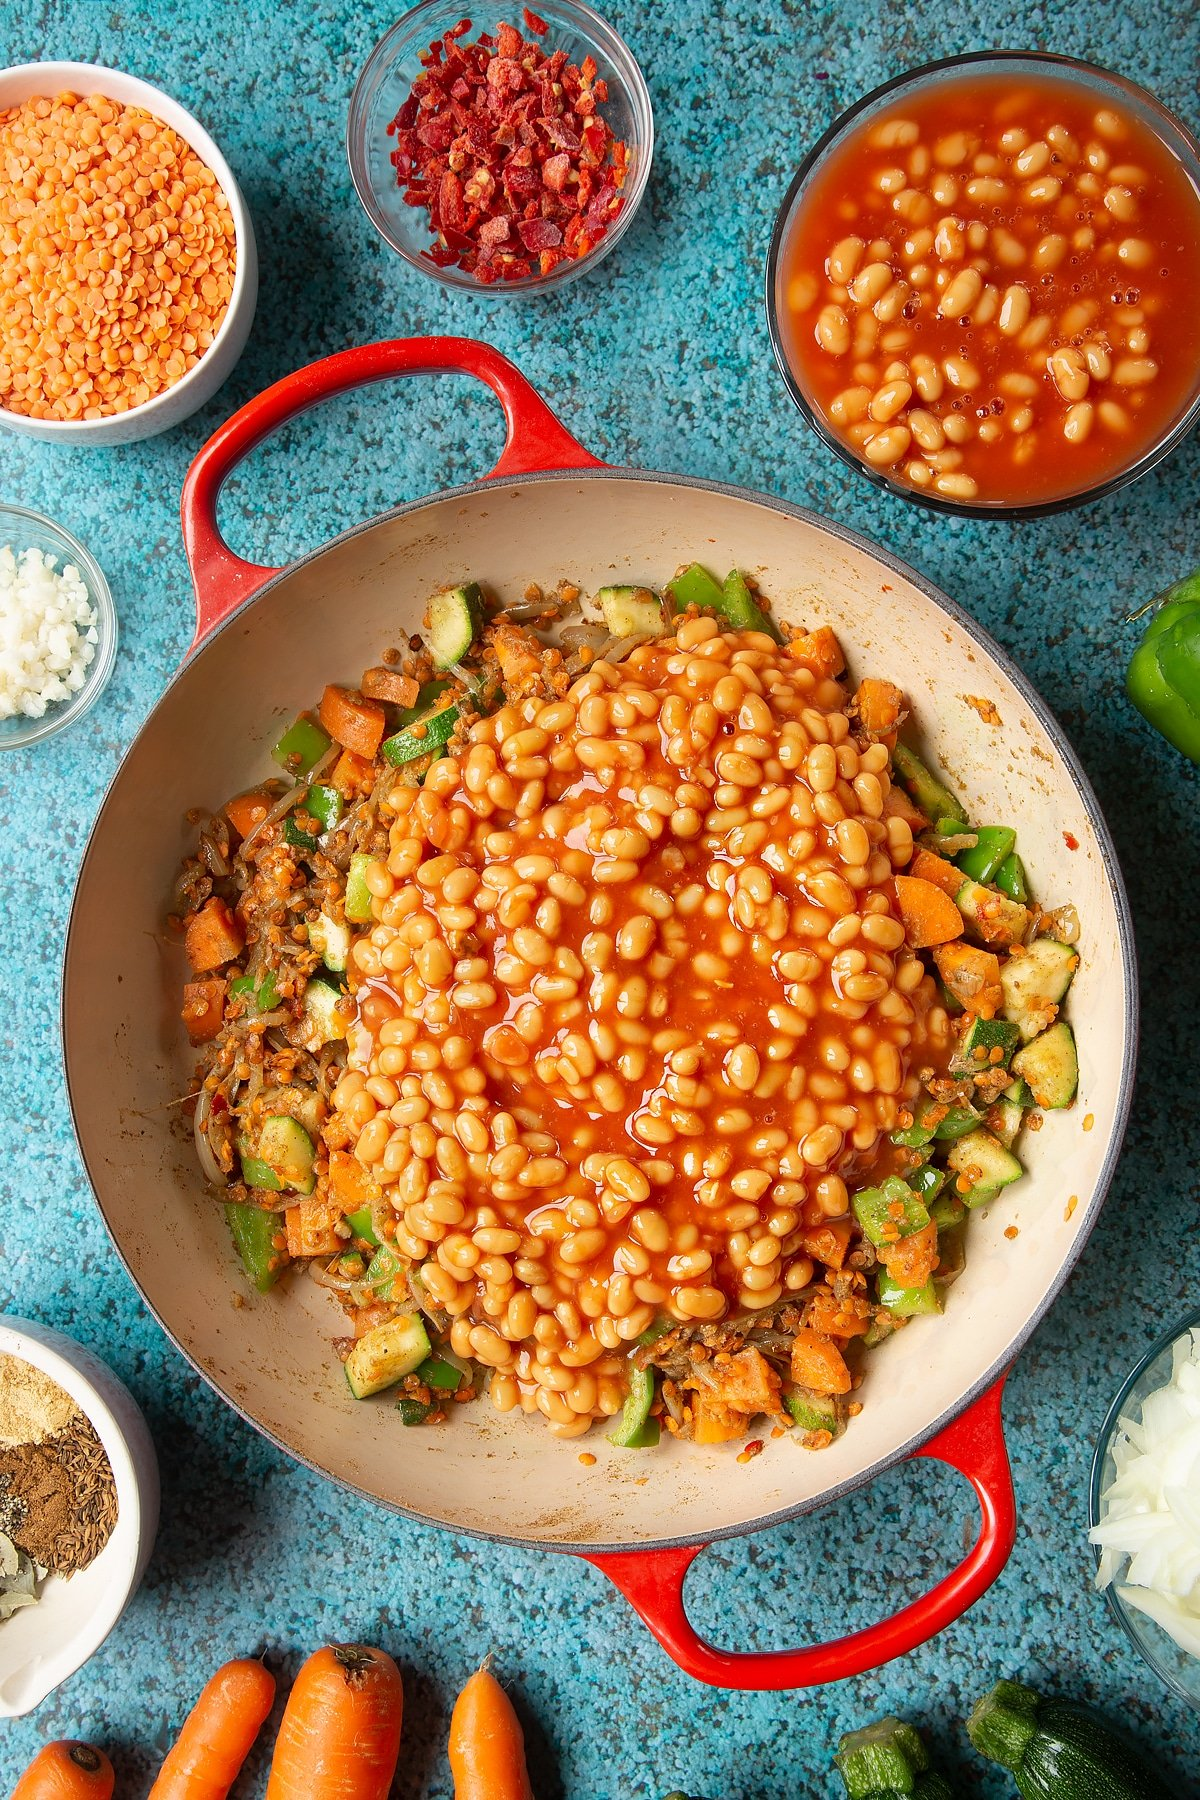 Fried onions, spices, peppers, carrots, courgette and red lentils in a pan with baked beans on top. Ingredients to make baked bean curry surround the pen.